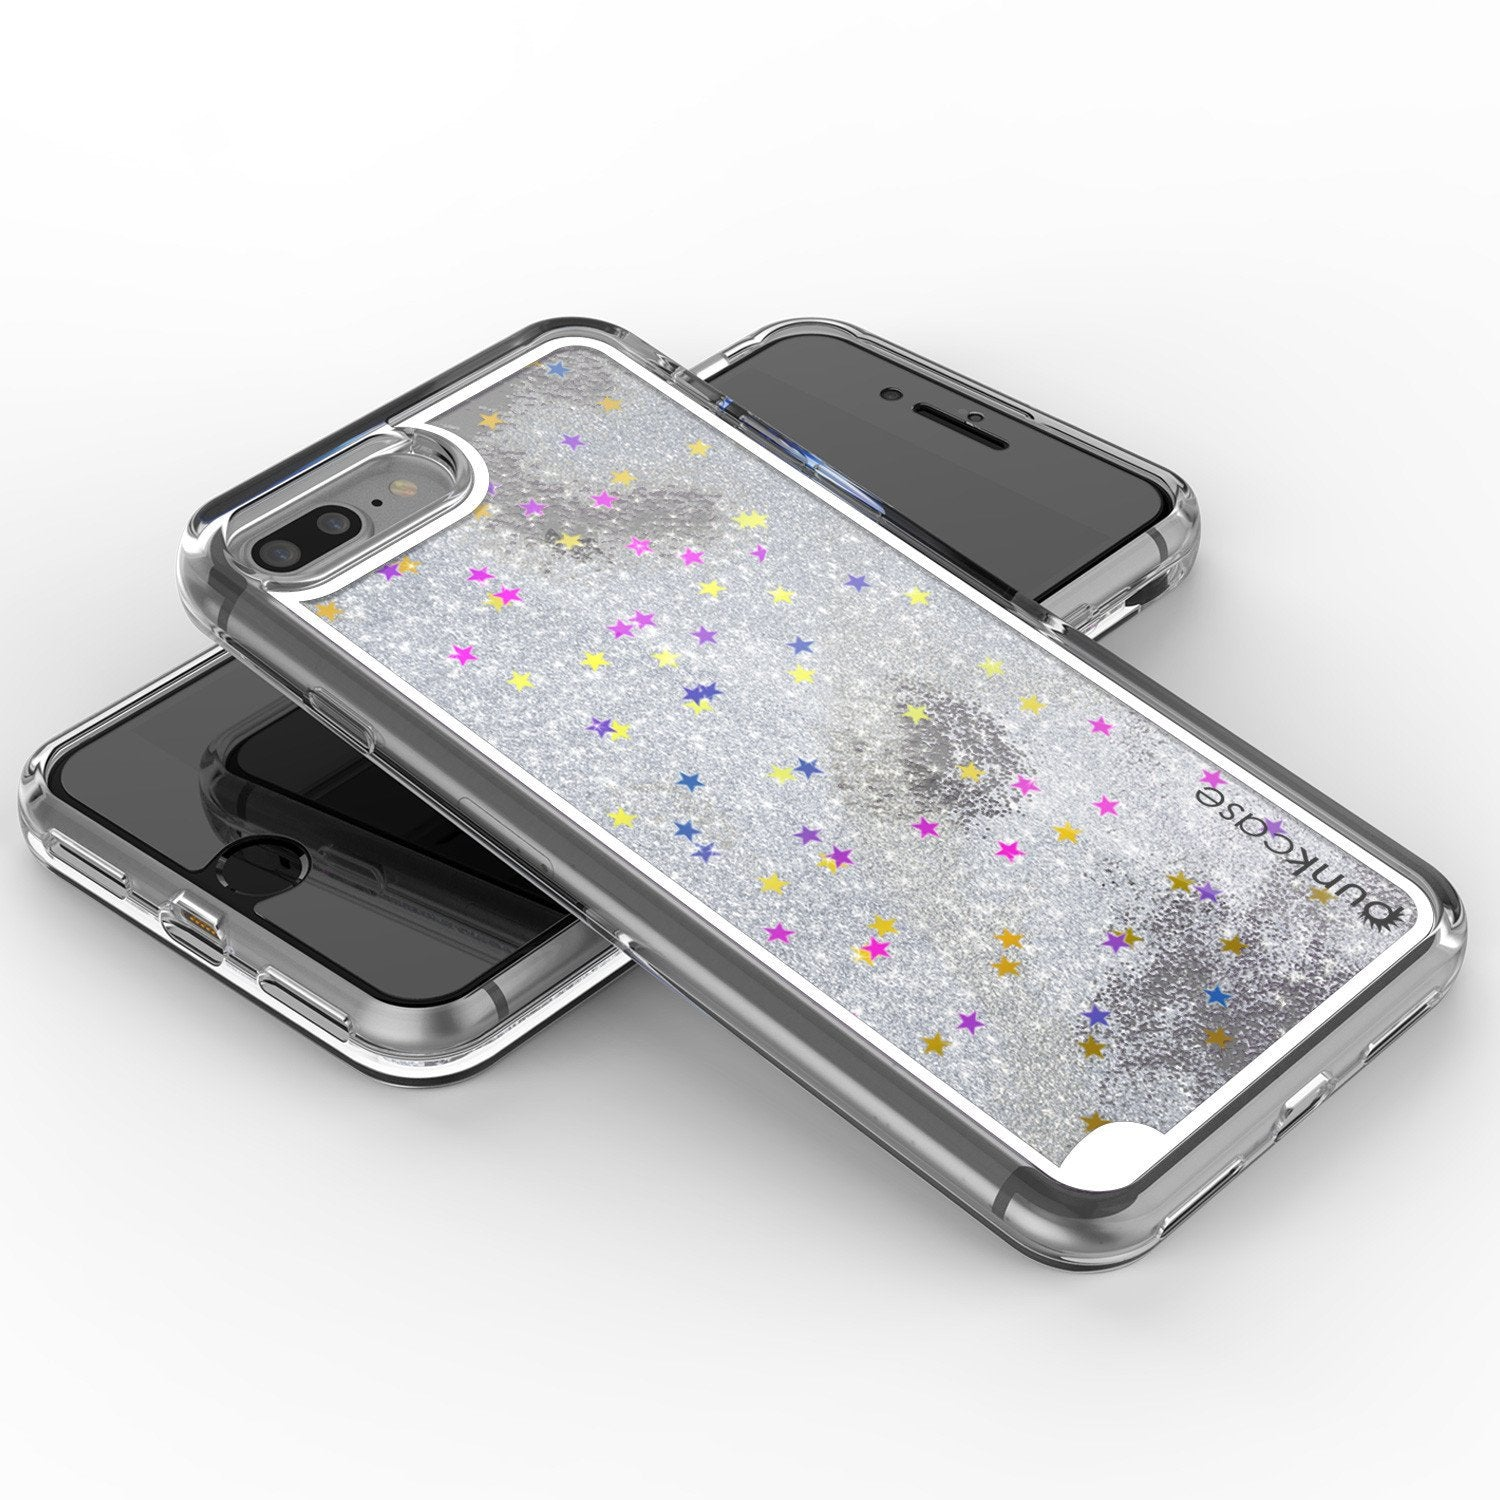 iPhone 7 Plus Case, Punkcase [Liquid Silver Series] Protective Dual Layer Floating Glitter Cover with lots of Bling & Sparkle + 0.3mm Tempered Glass Screen Protector for Apple iPhone 7s Plus